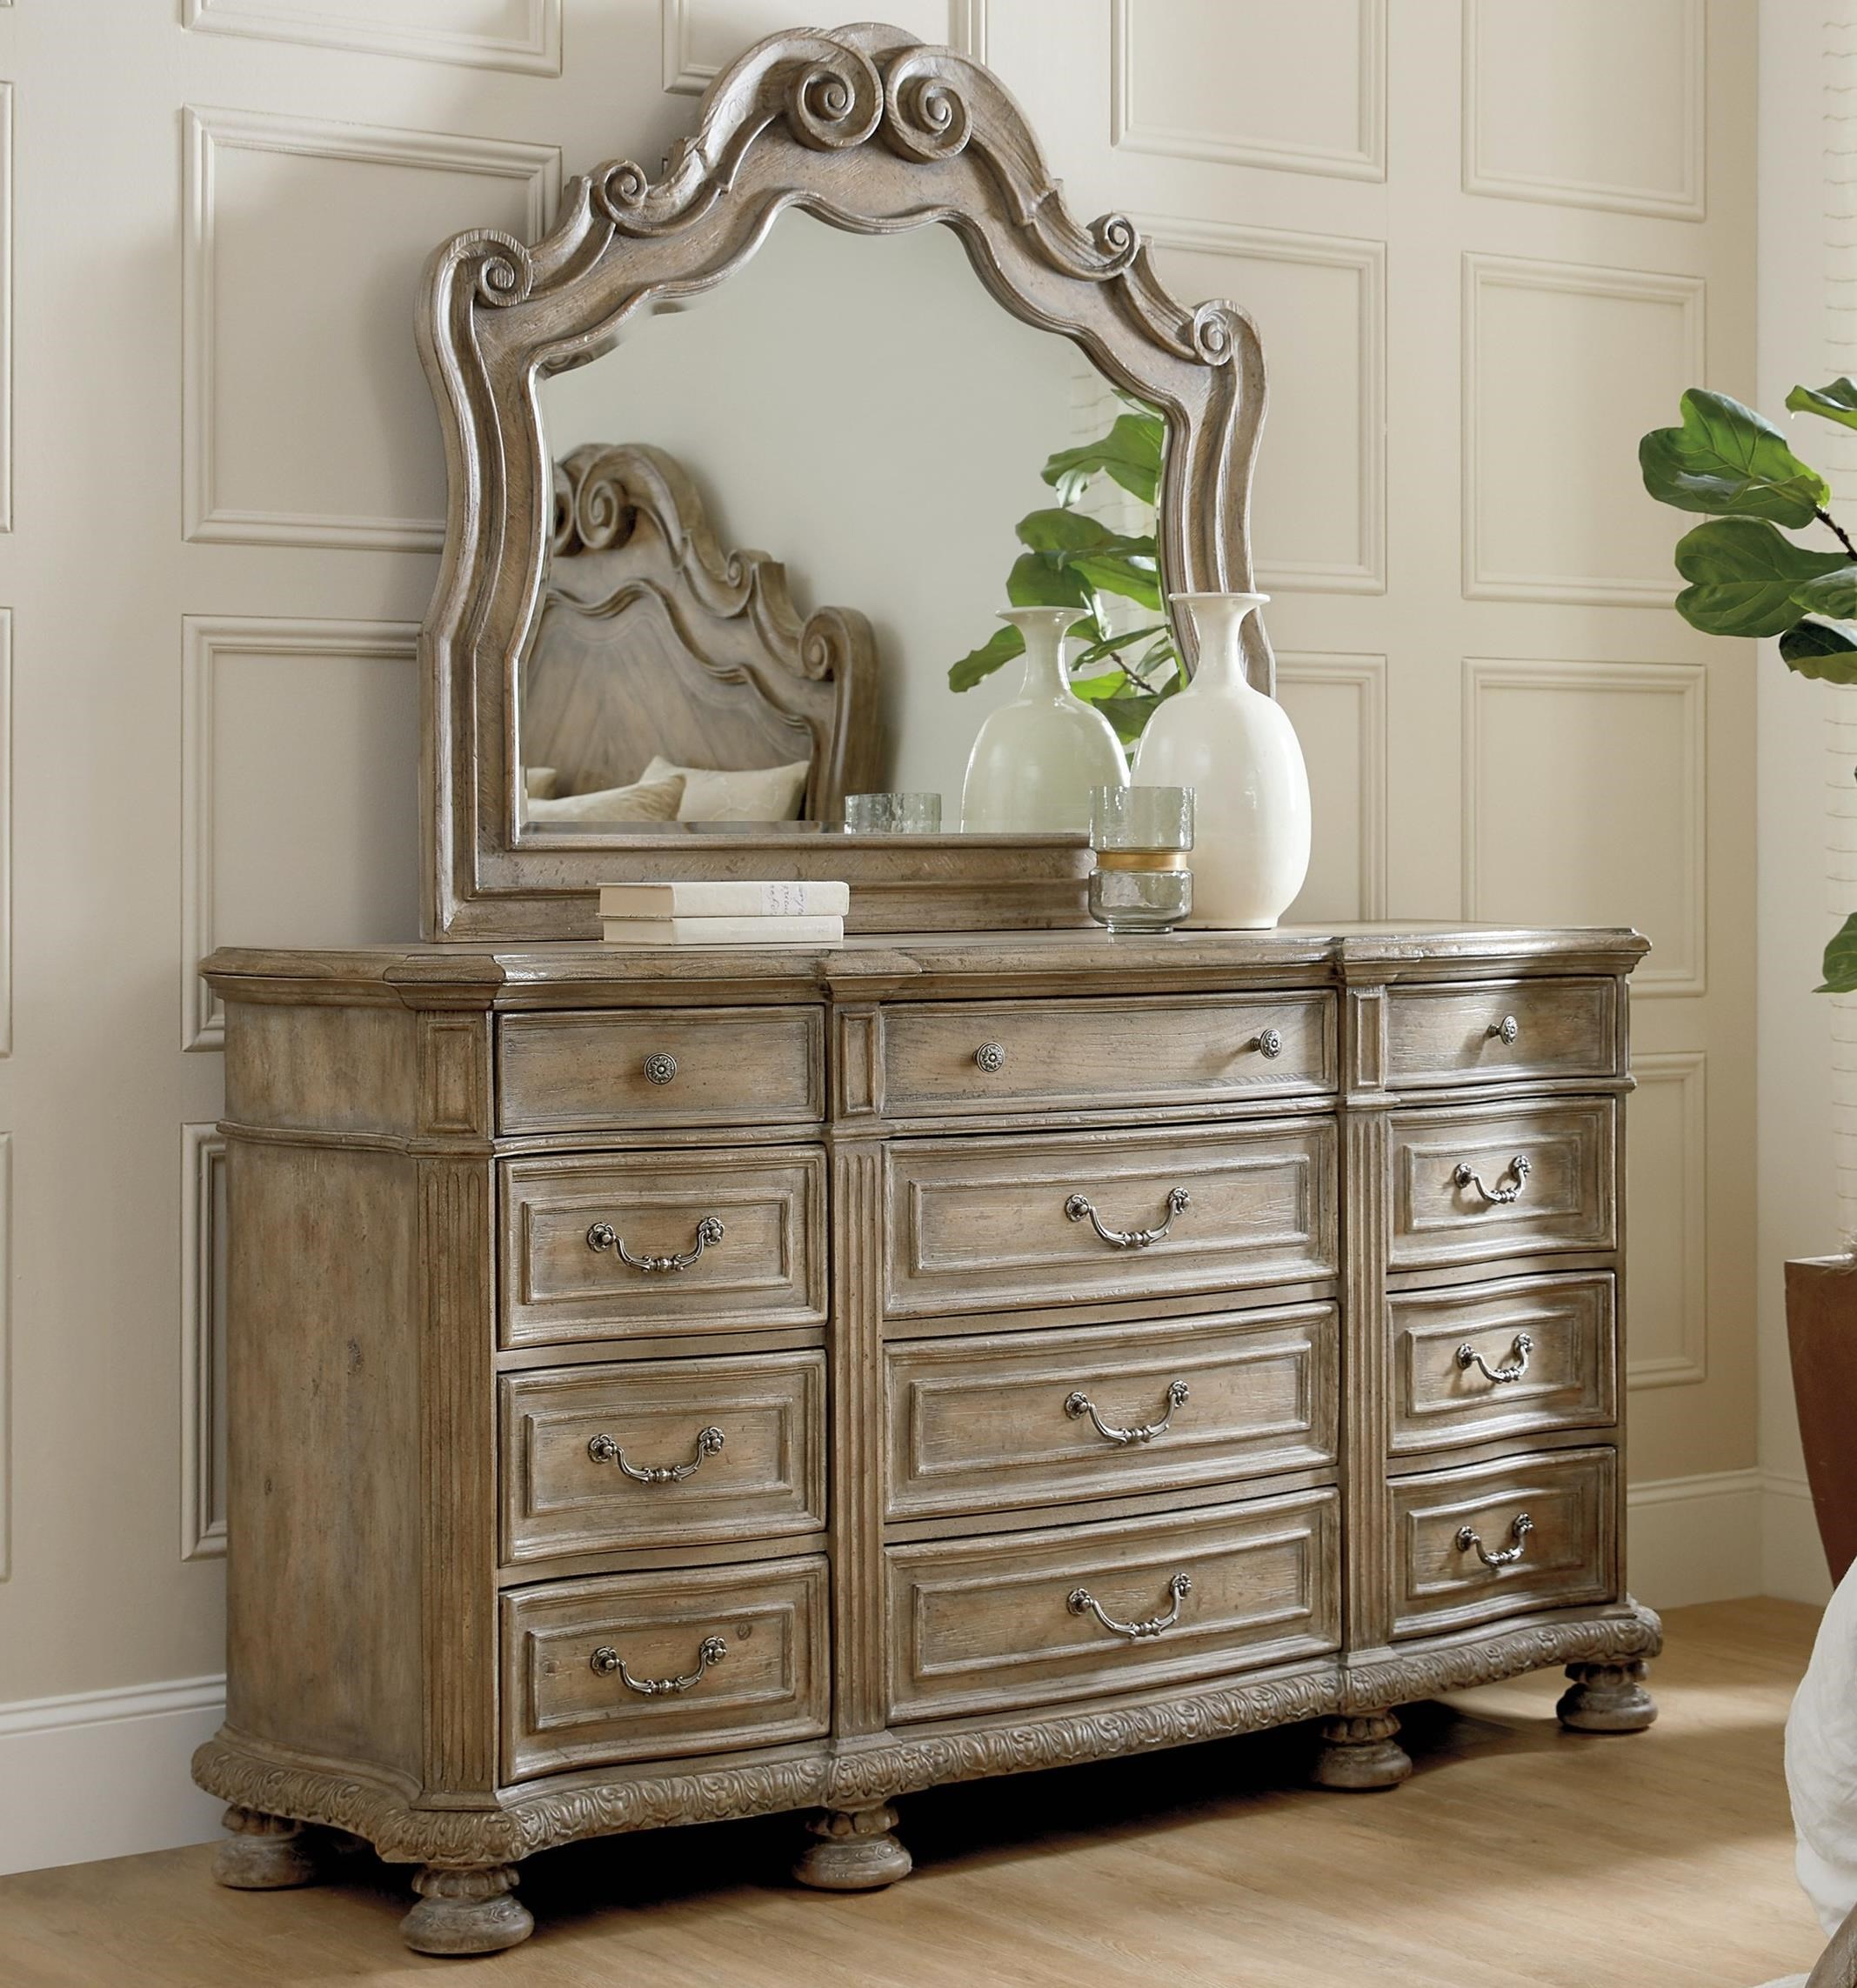 Castella Dresser and Mirror Set by Hooker Furniture at Alison Craig Home Furnishings